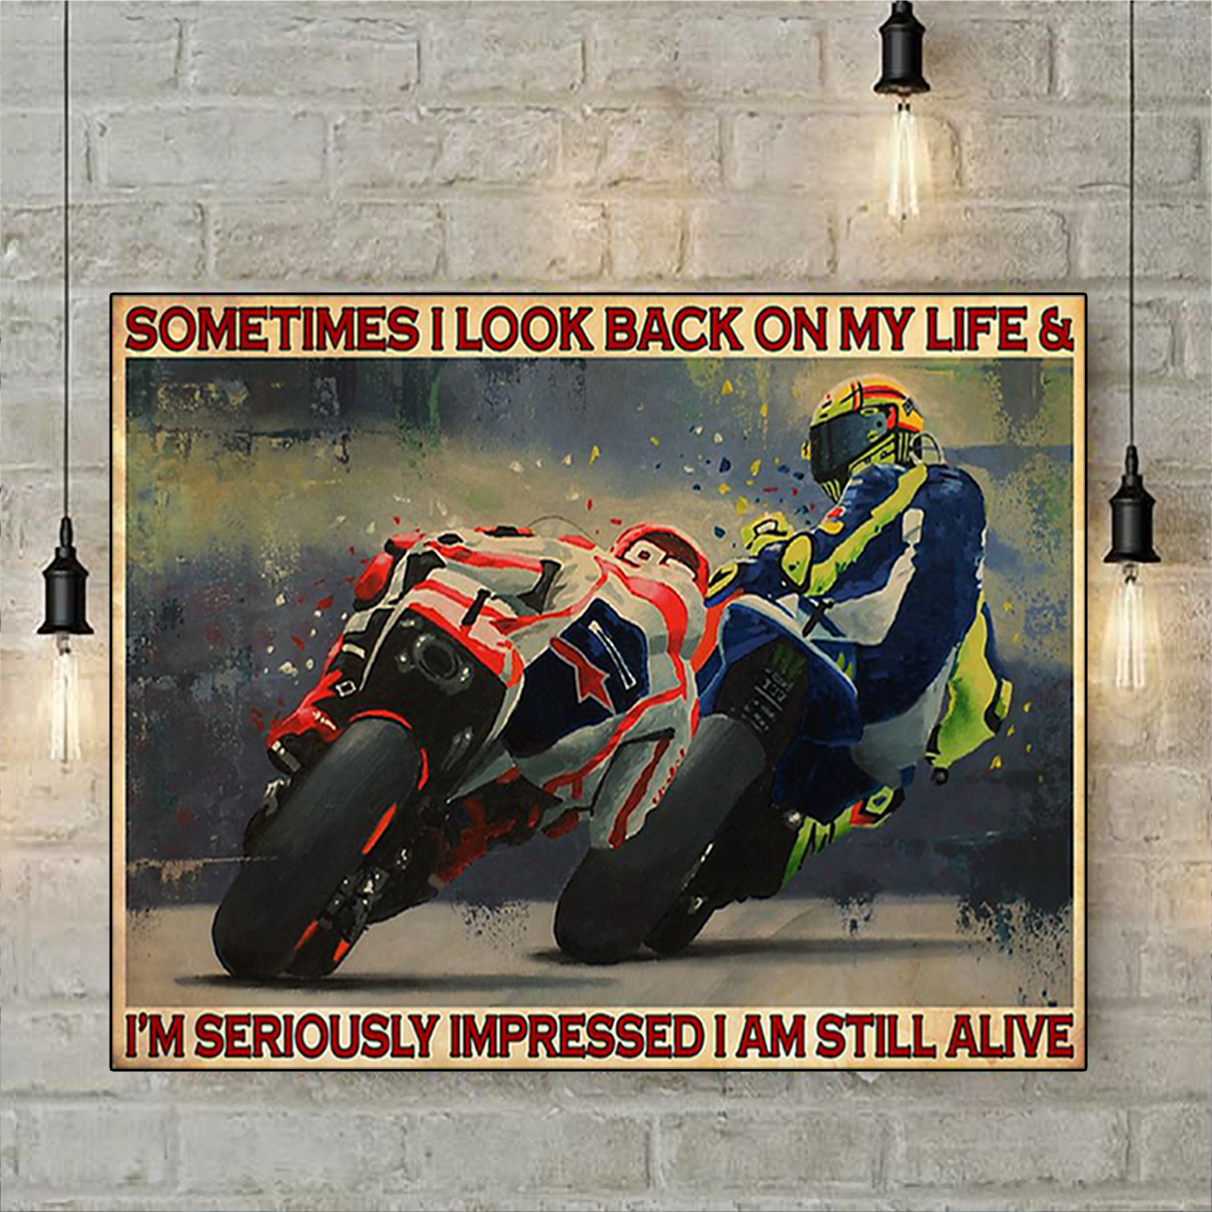 Motorcycle racing sometimes I look back on my life poster A1